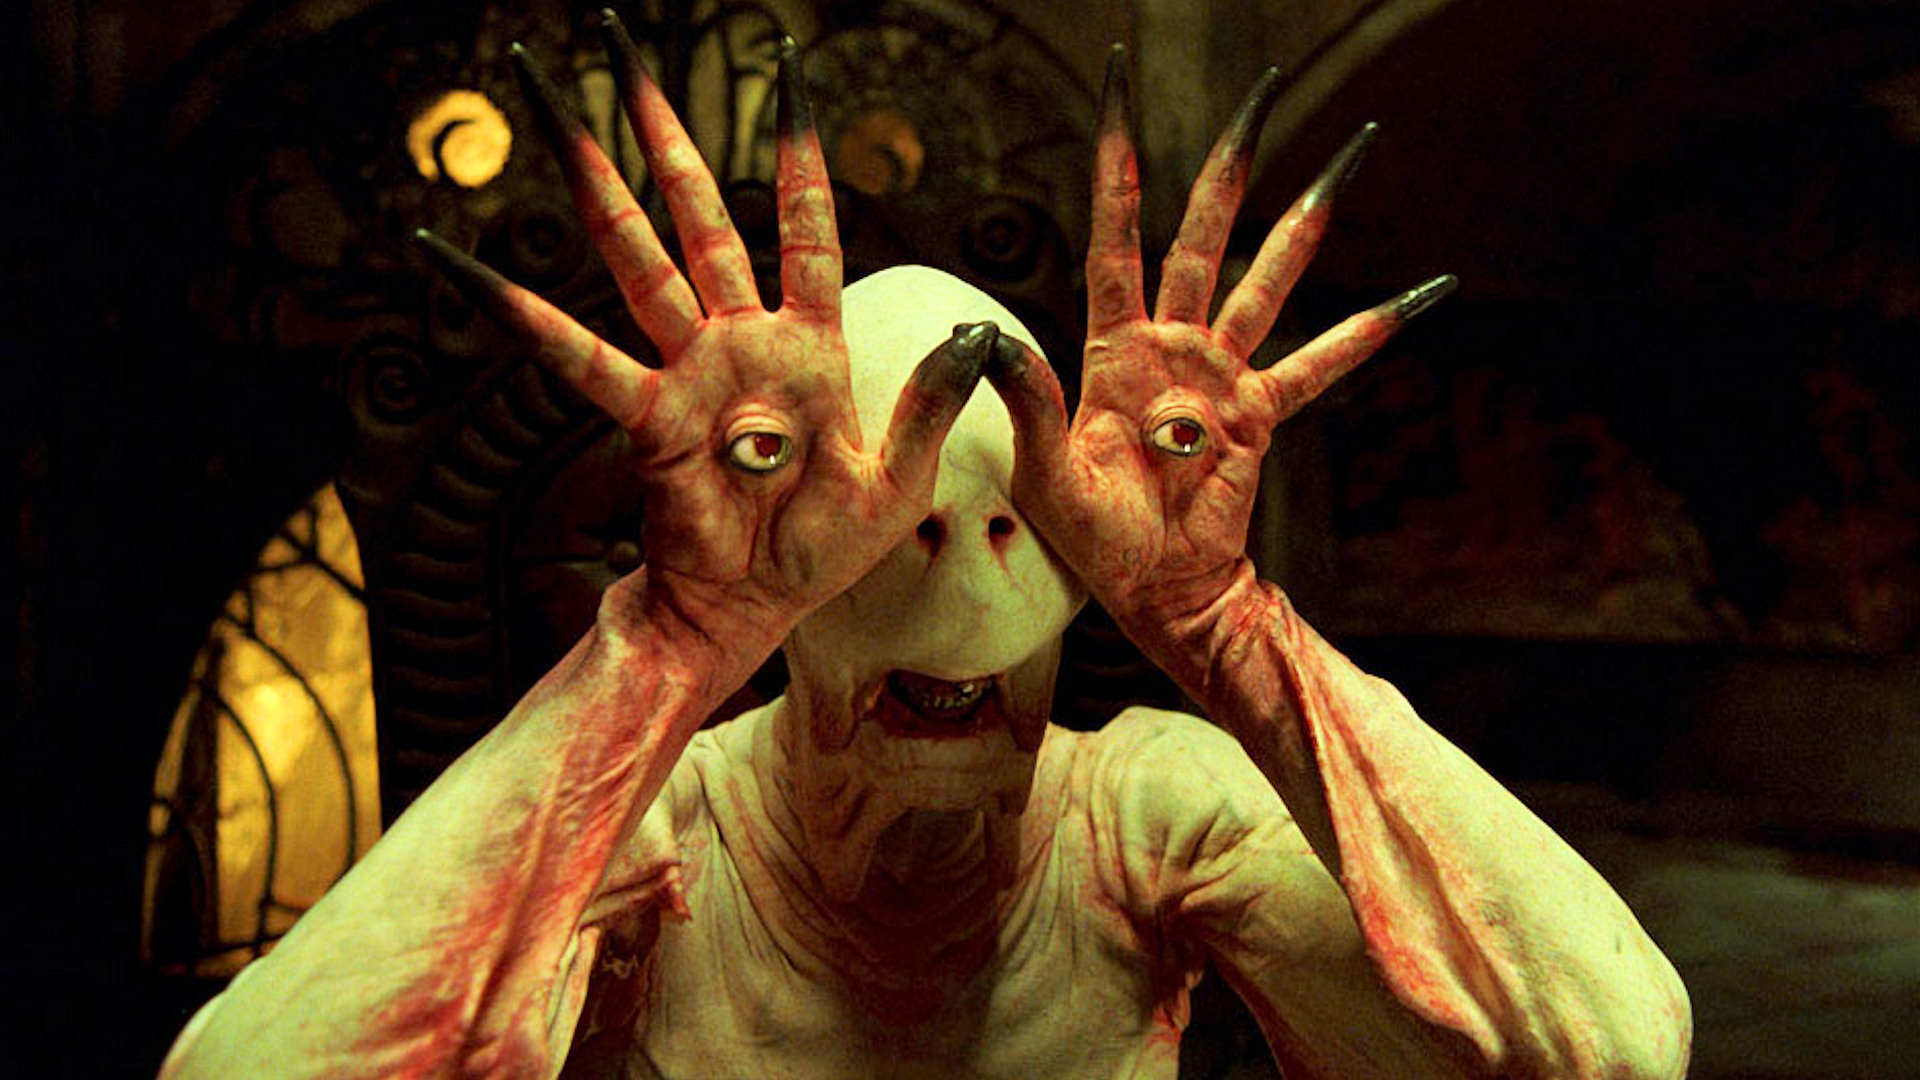 Pans labyrinth hum425 analepsis heres a rough commentary on pans labyrinth if i were writing a paper id consider it a first draft and look to re draft twice well discuss pl in class buycottarizona Image collections